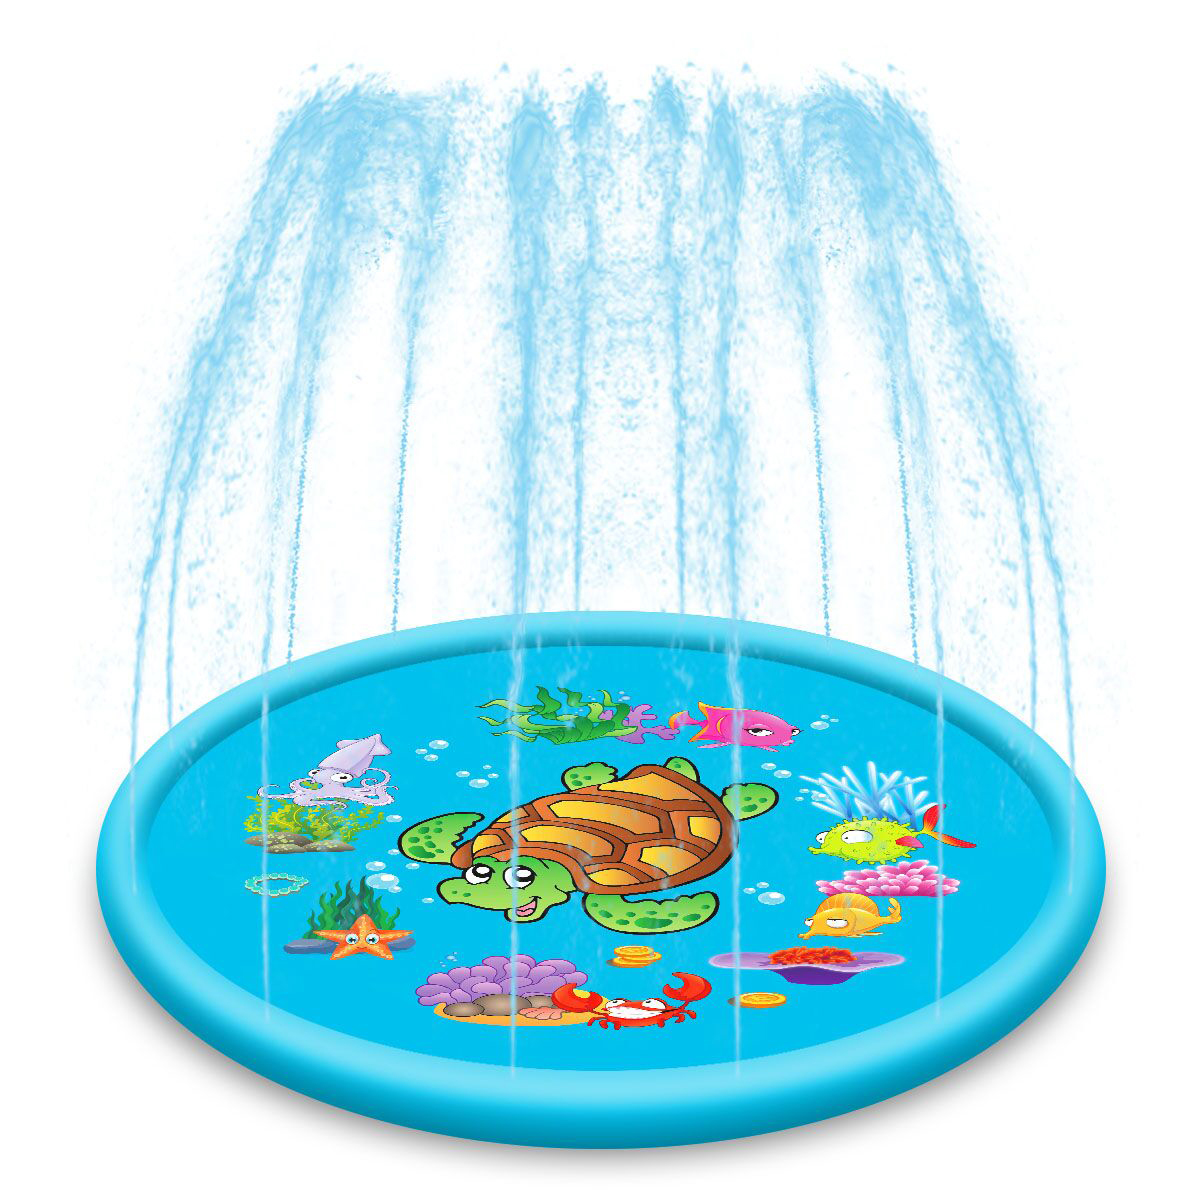 110cm Or 170cm Folding Portable Sprinkler Water Play Mat Outdoor Inflatable Kids Toddler Fountain Play Pad Water Play Equipment